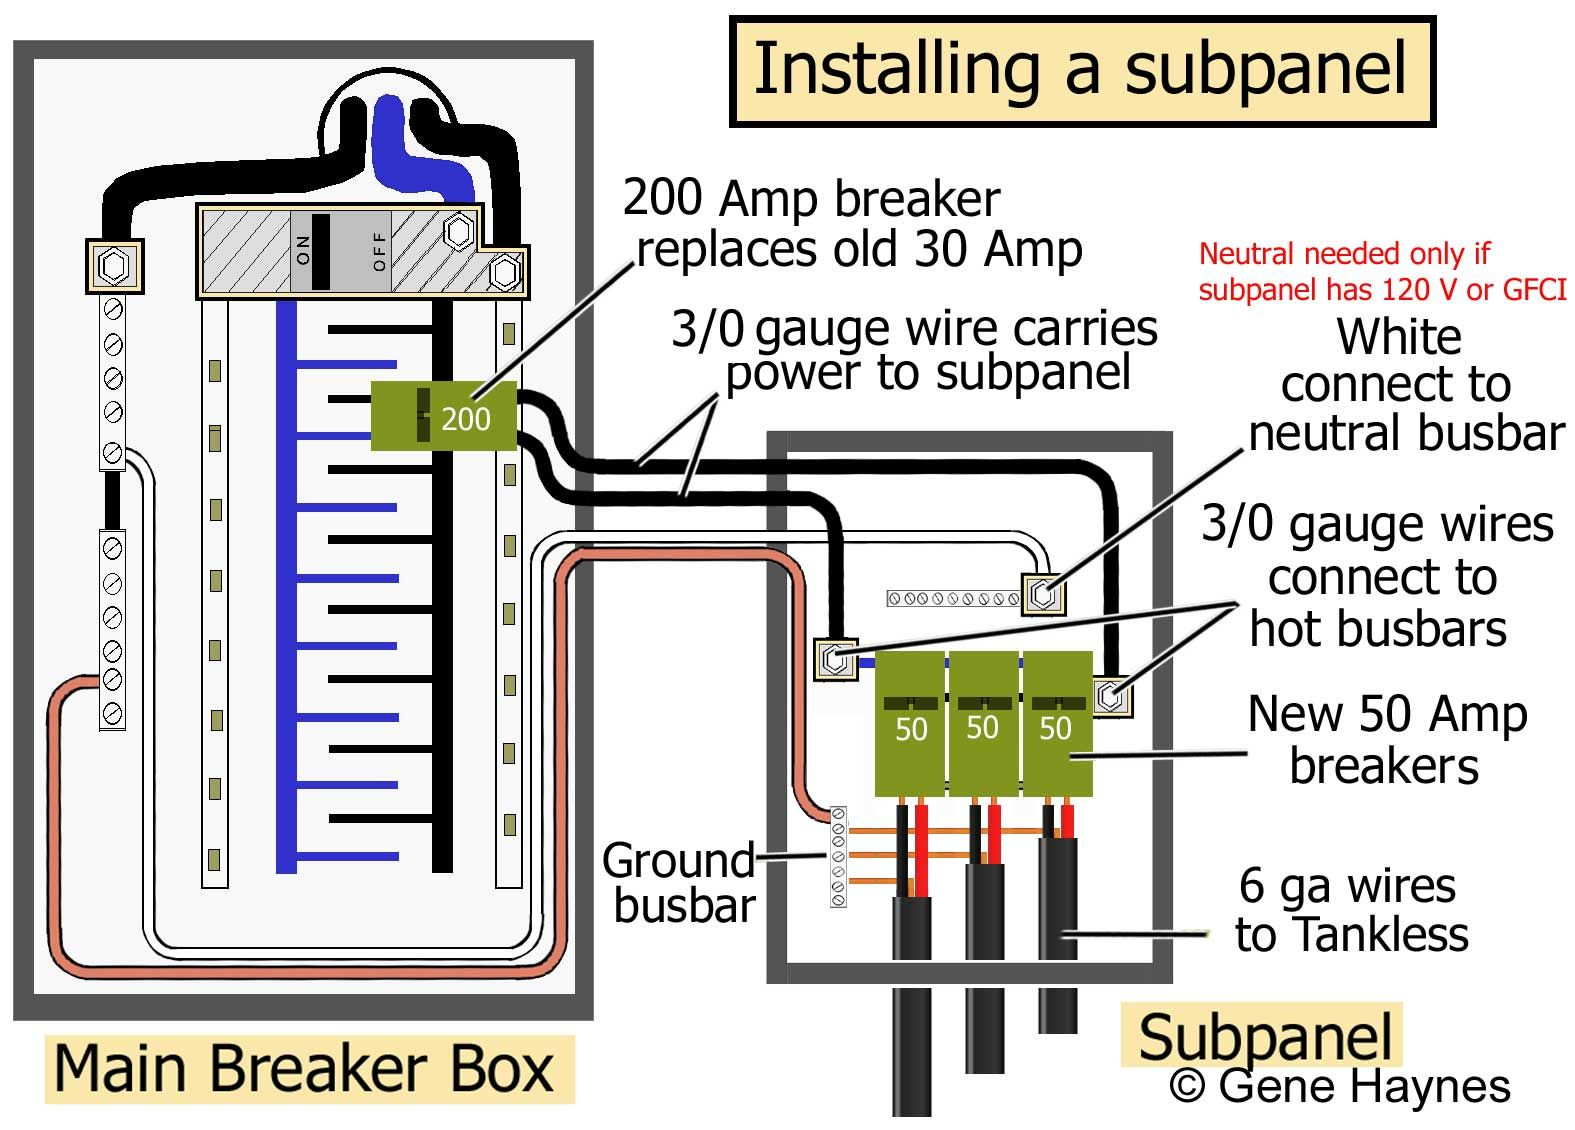 how to install a subpanel how to install main lug, wiring diagram electrical sub panel grounding how to install a subpanel how to install main lug, wiring diagram